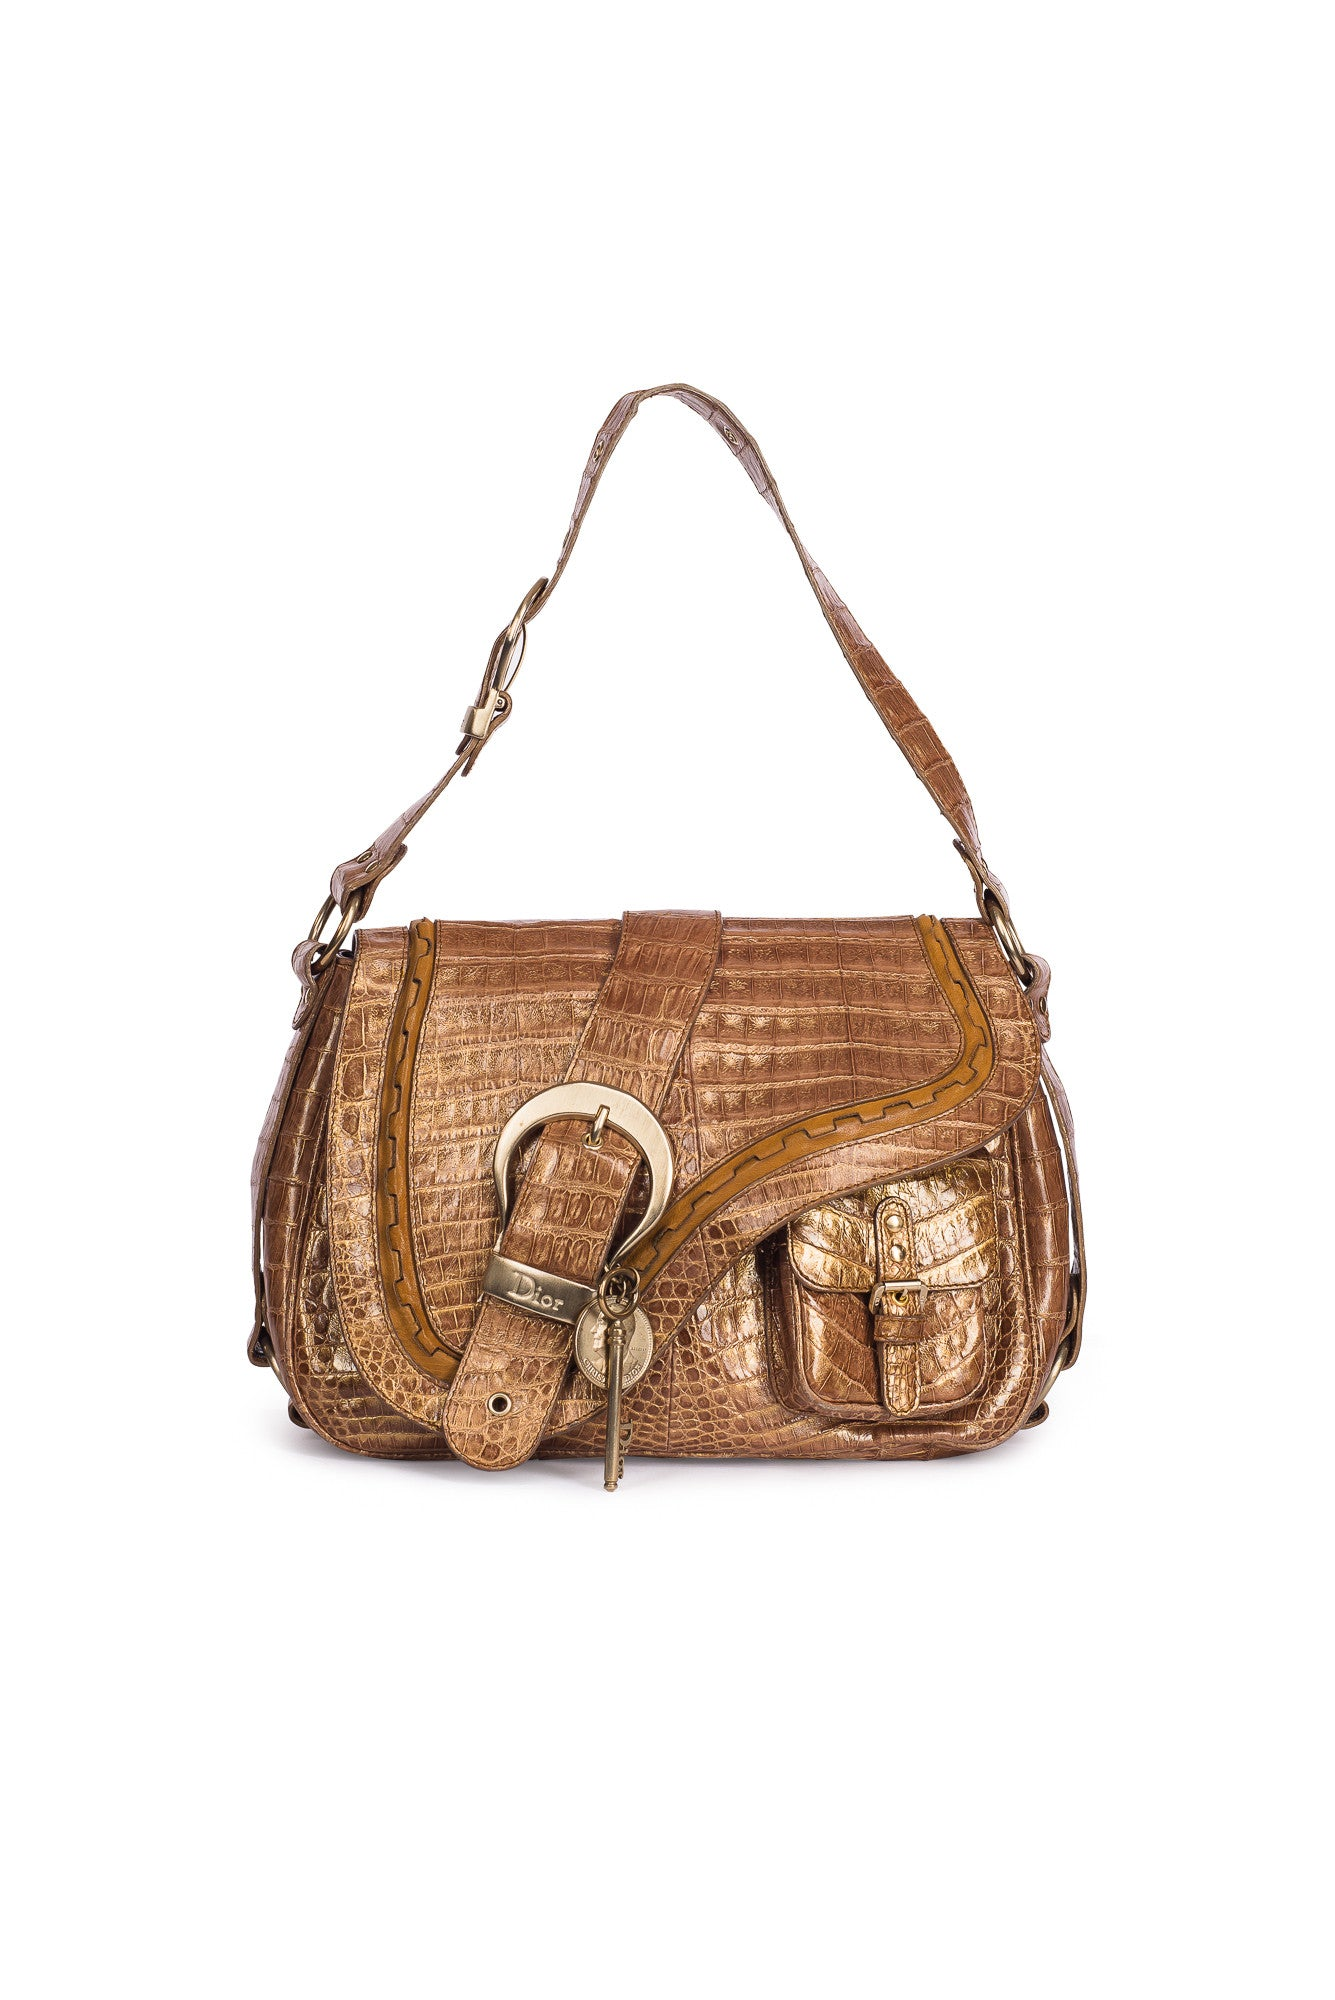 CHRISTIAN DIOR Crocodile Vintage Bag – FashionXC 16ffe93762753